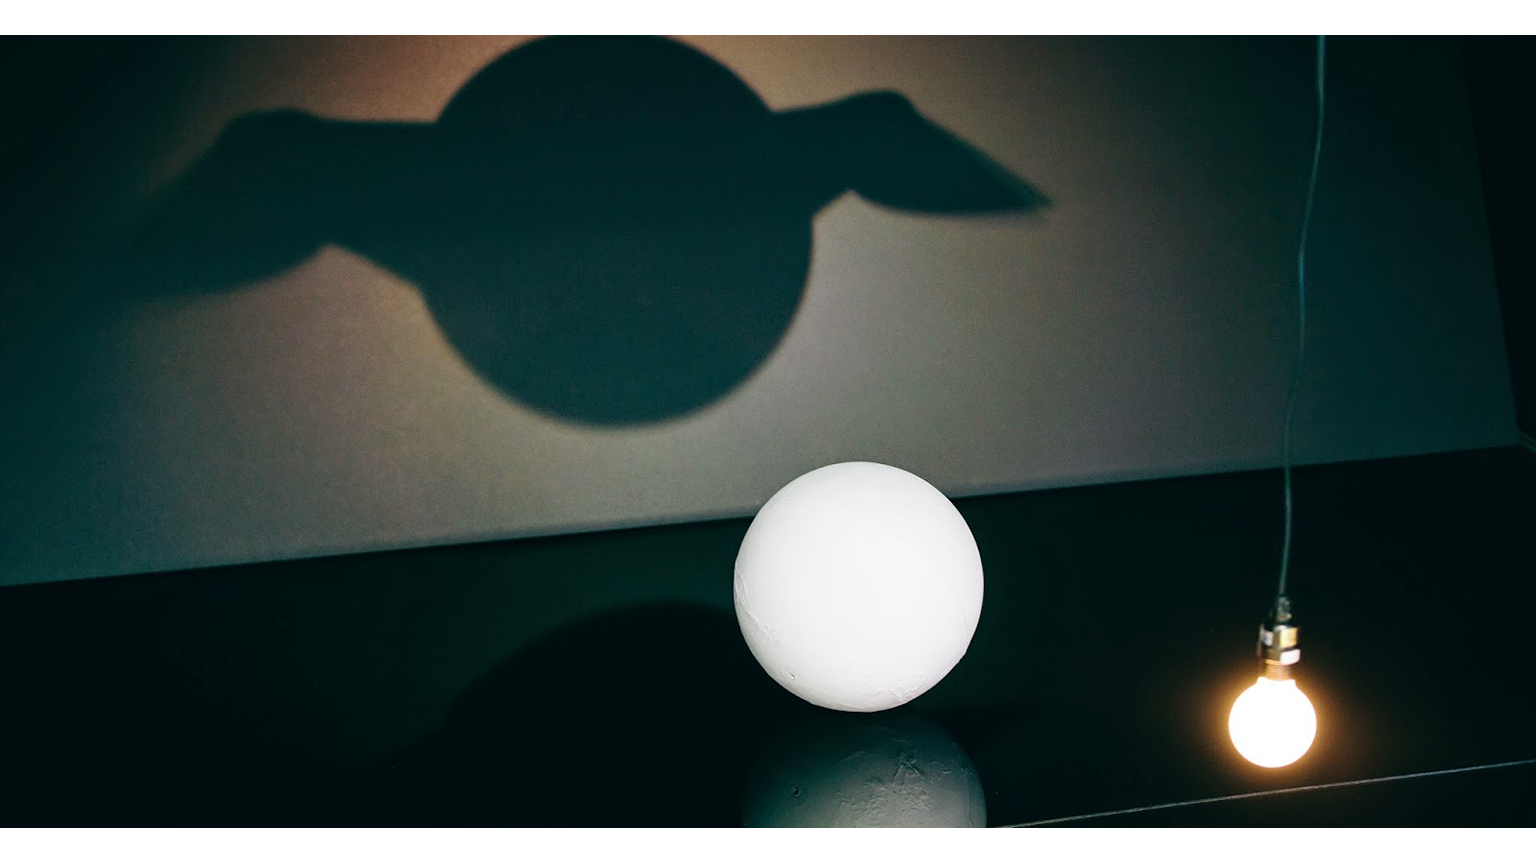 A light casting a shadow of a sphere but the shadow has wings